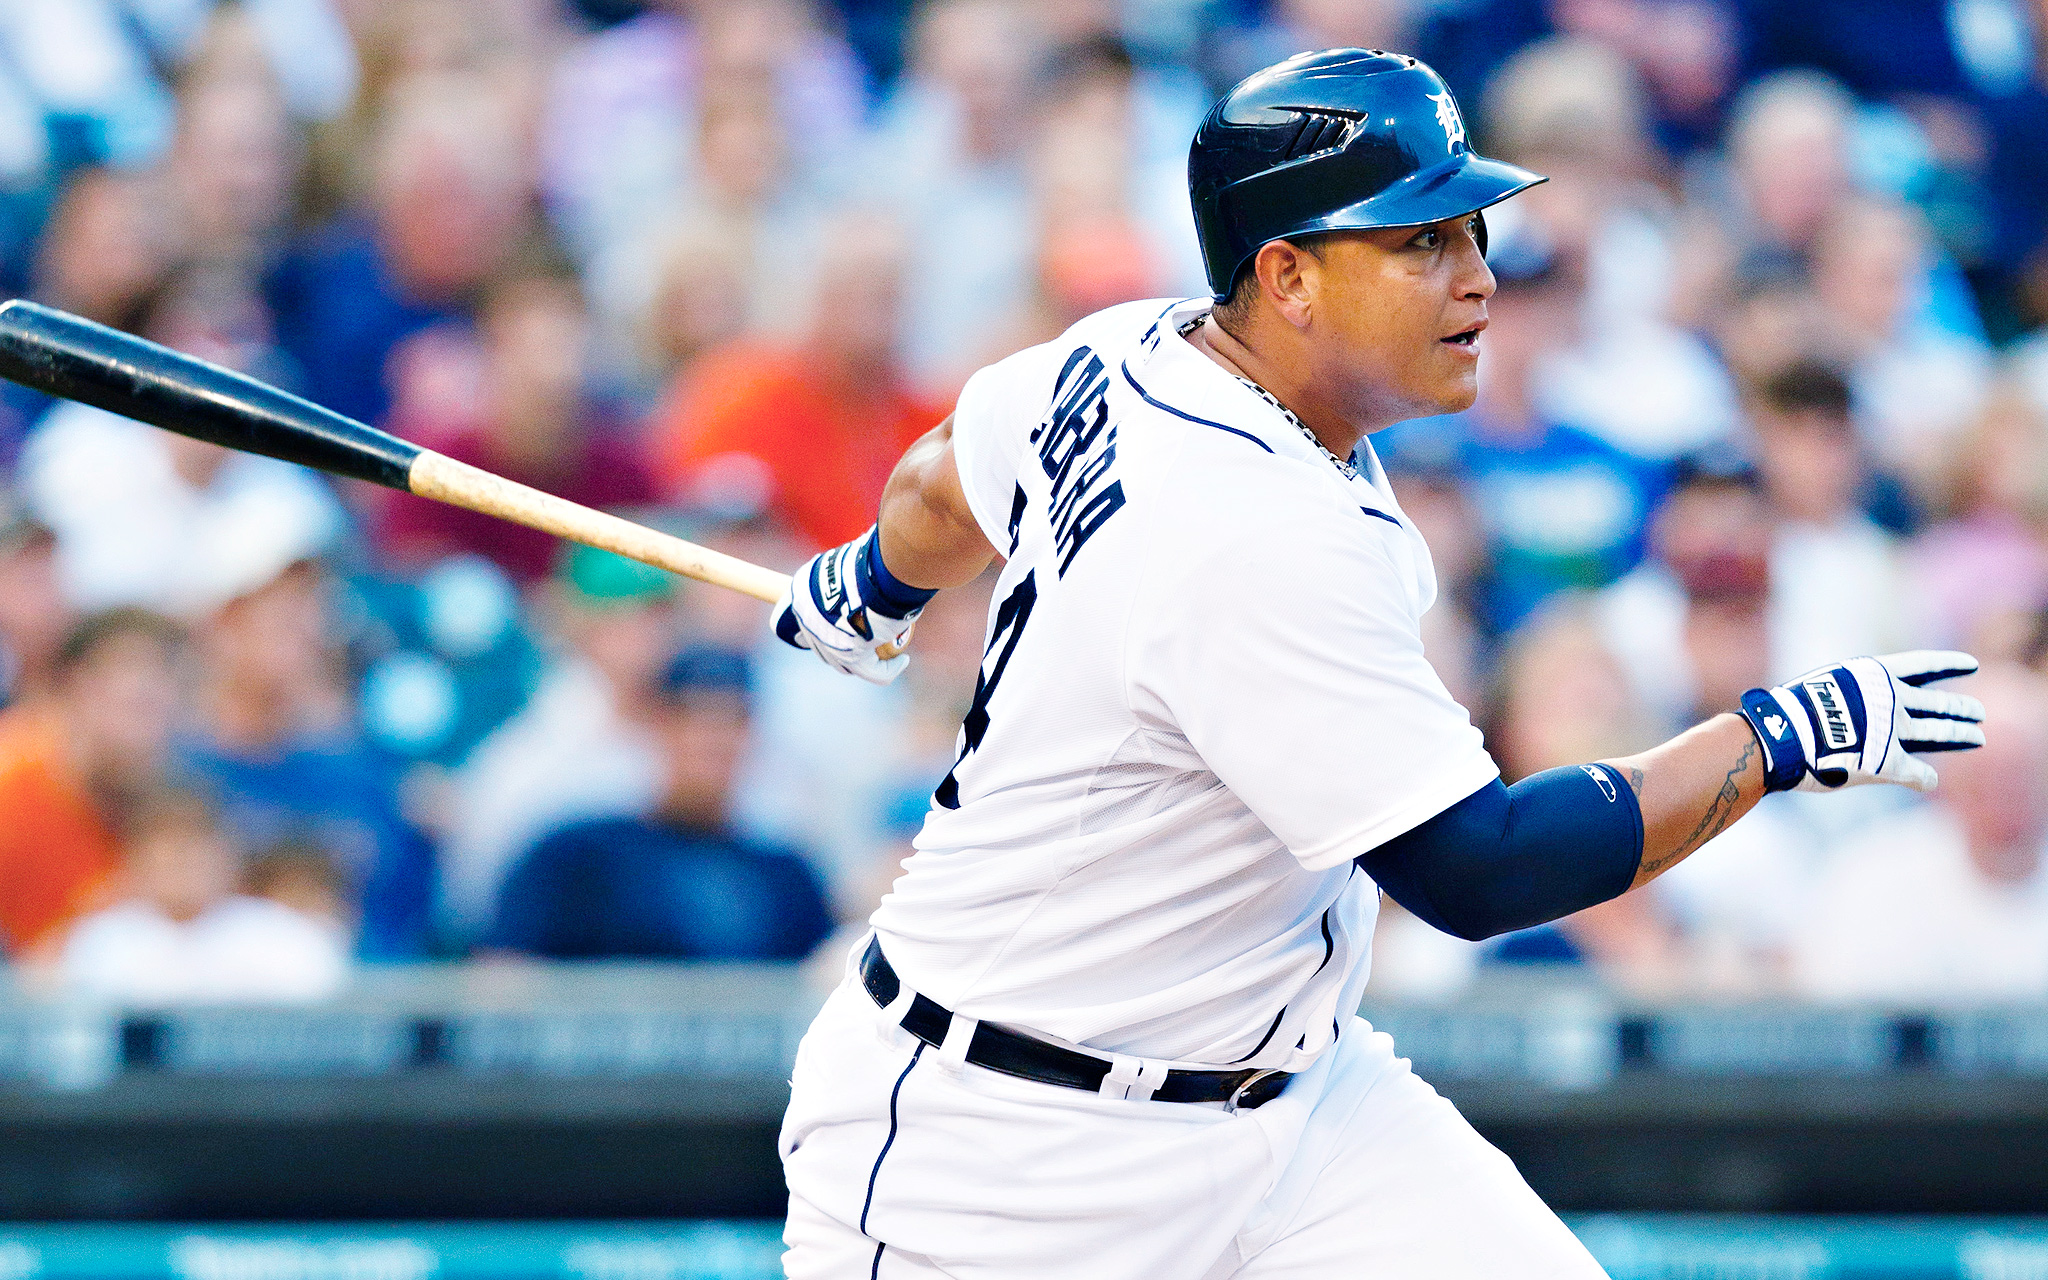 Best Overall Hitter: Miguel Cabrera